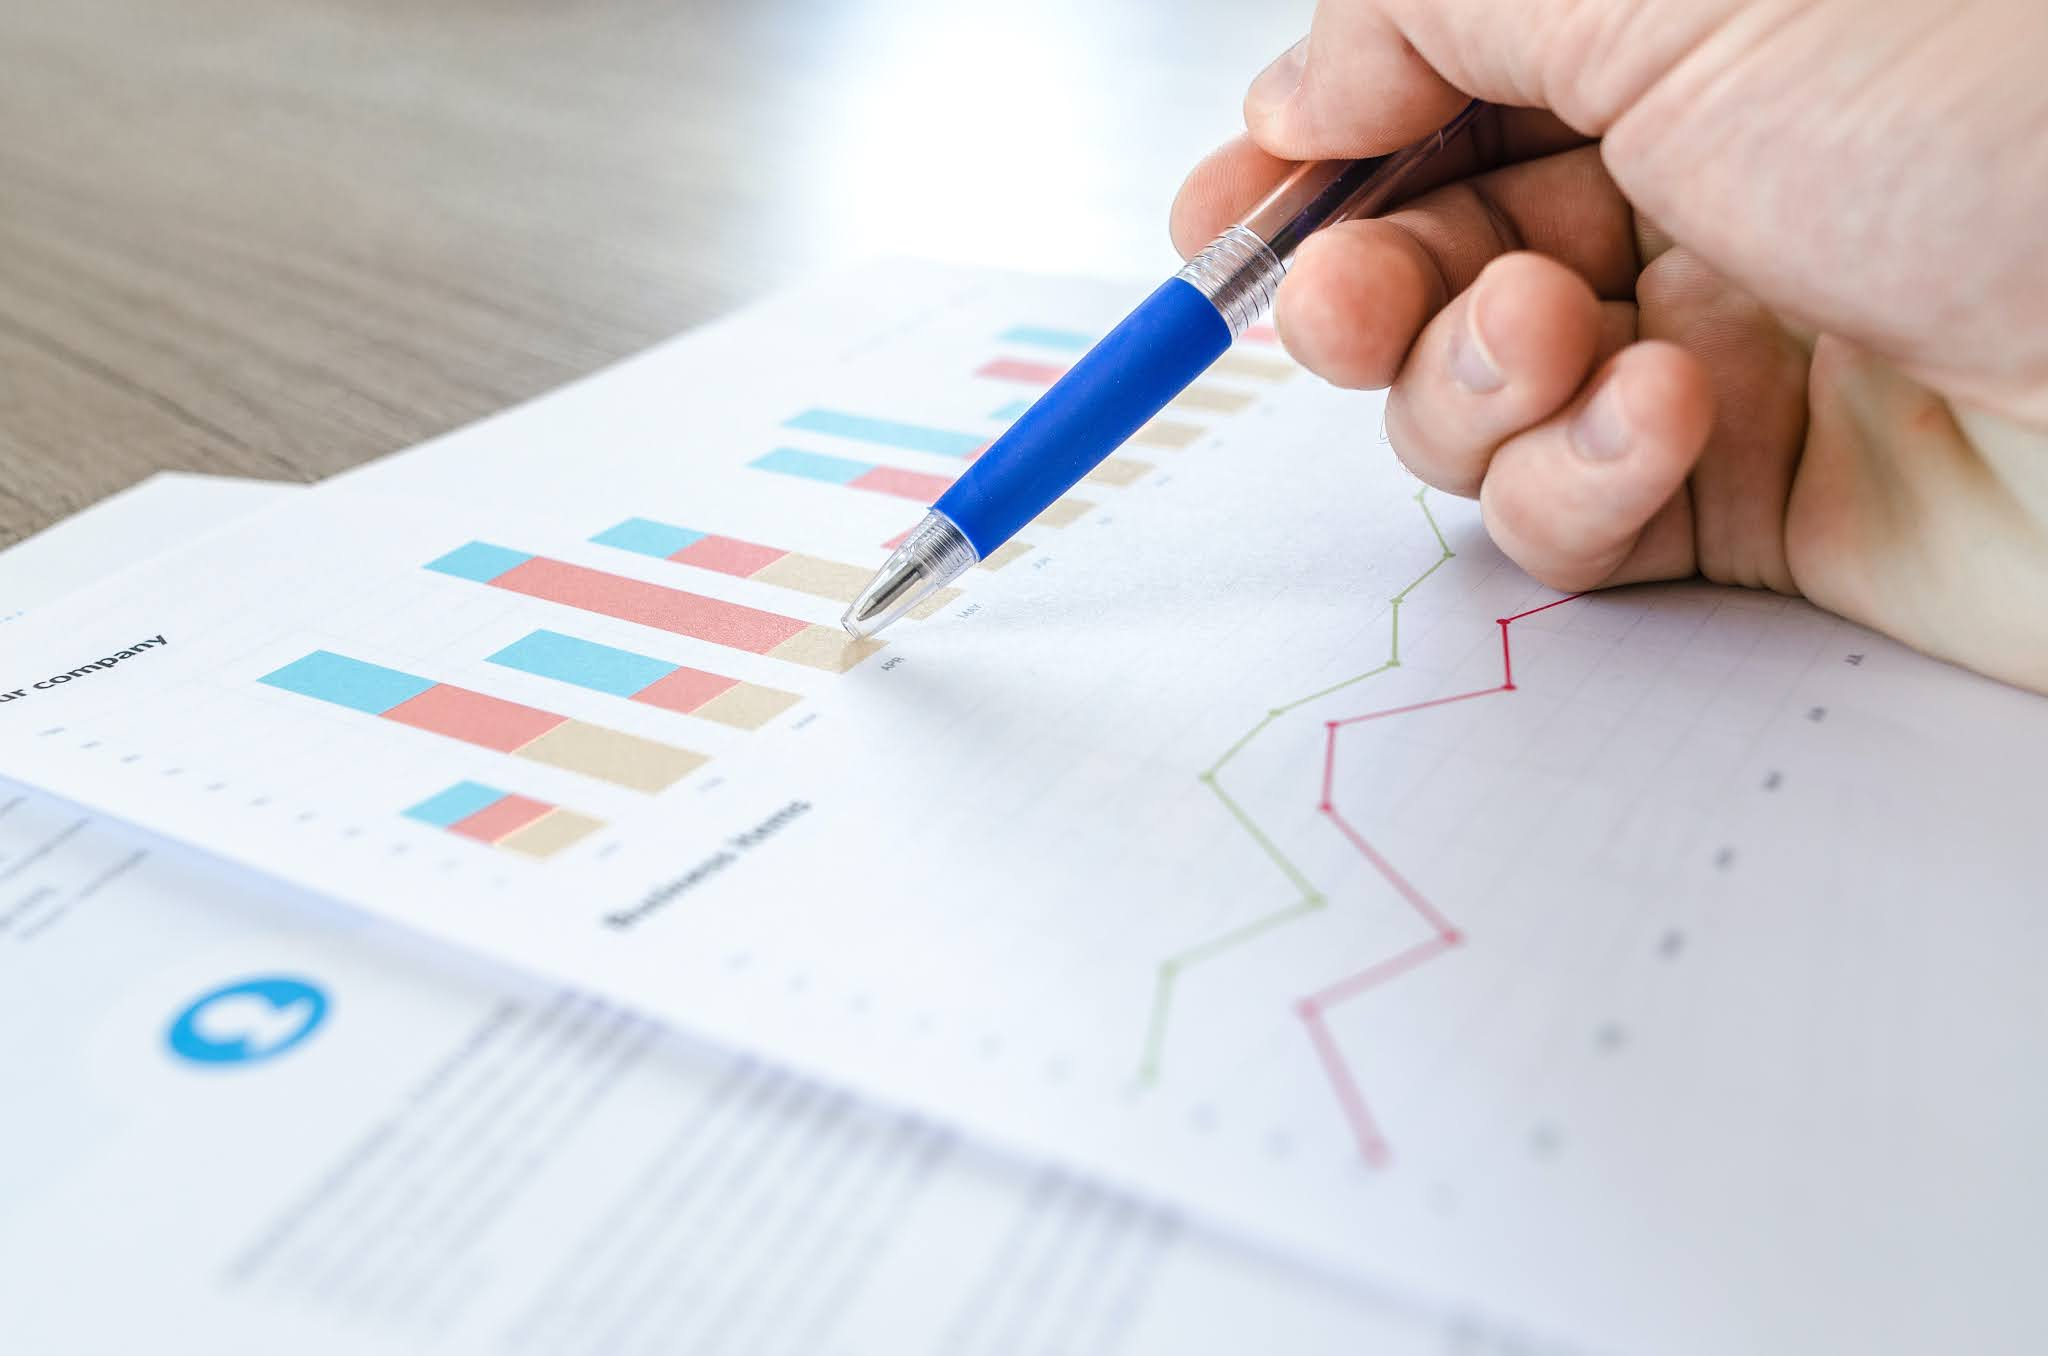 What to read in Auditor's report, How to read Auditors report?